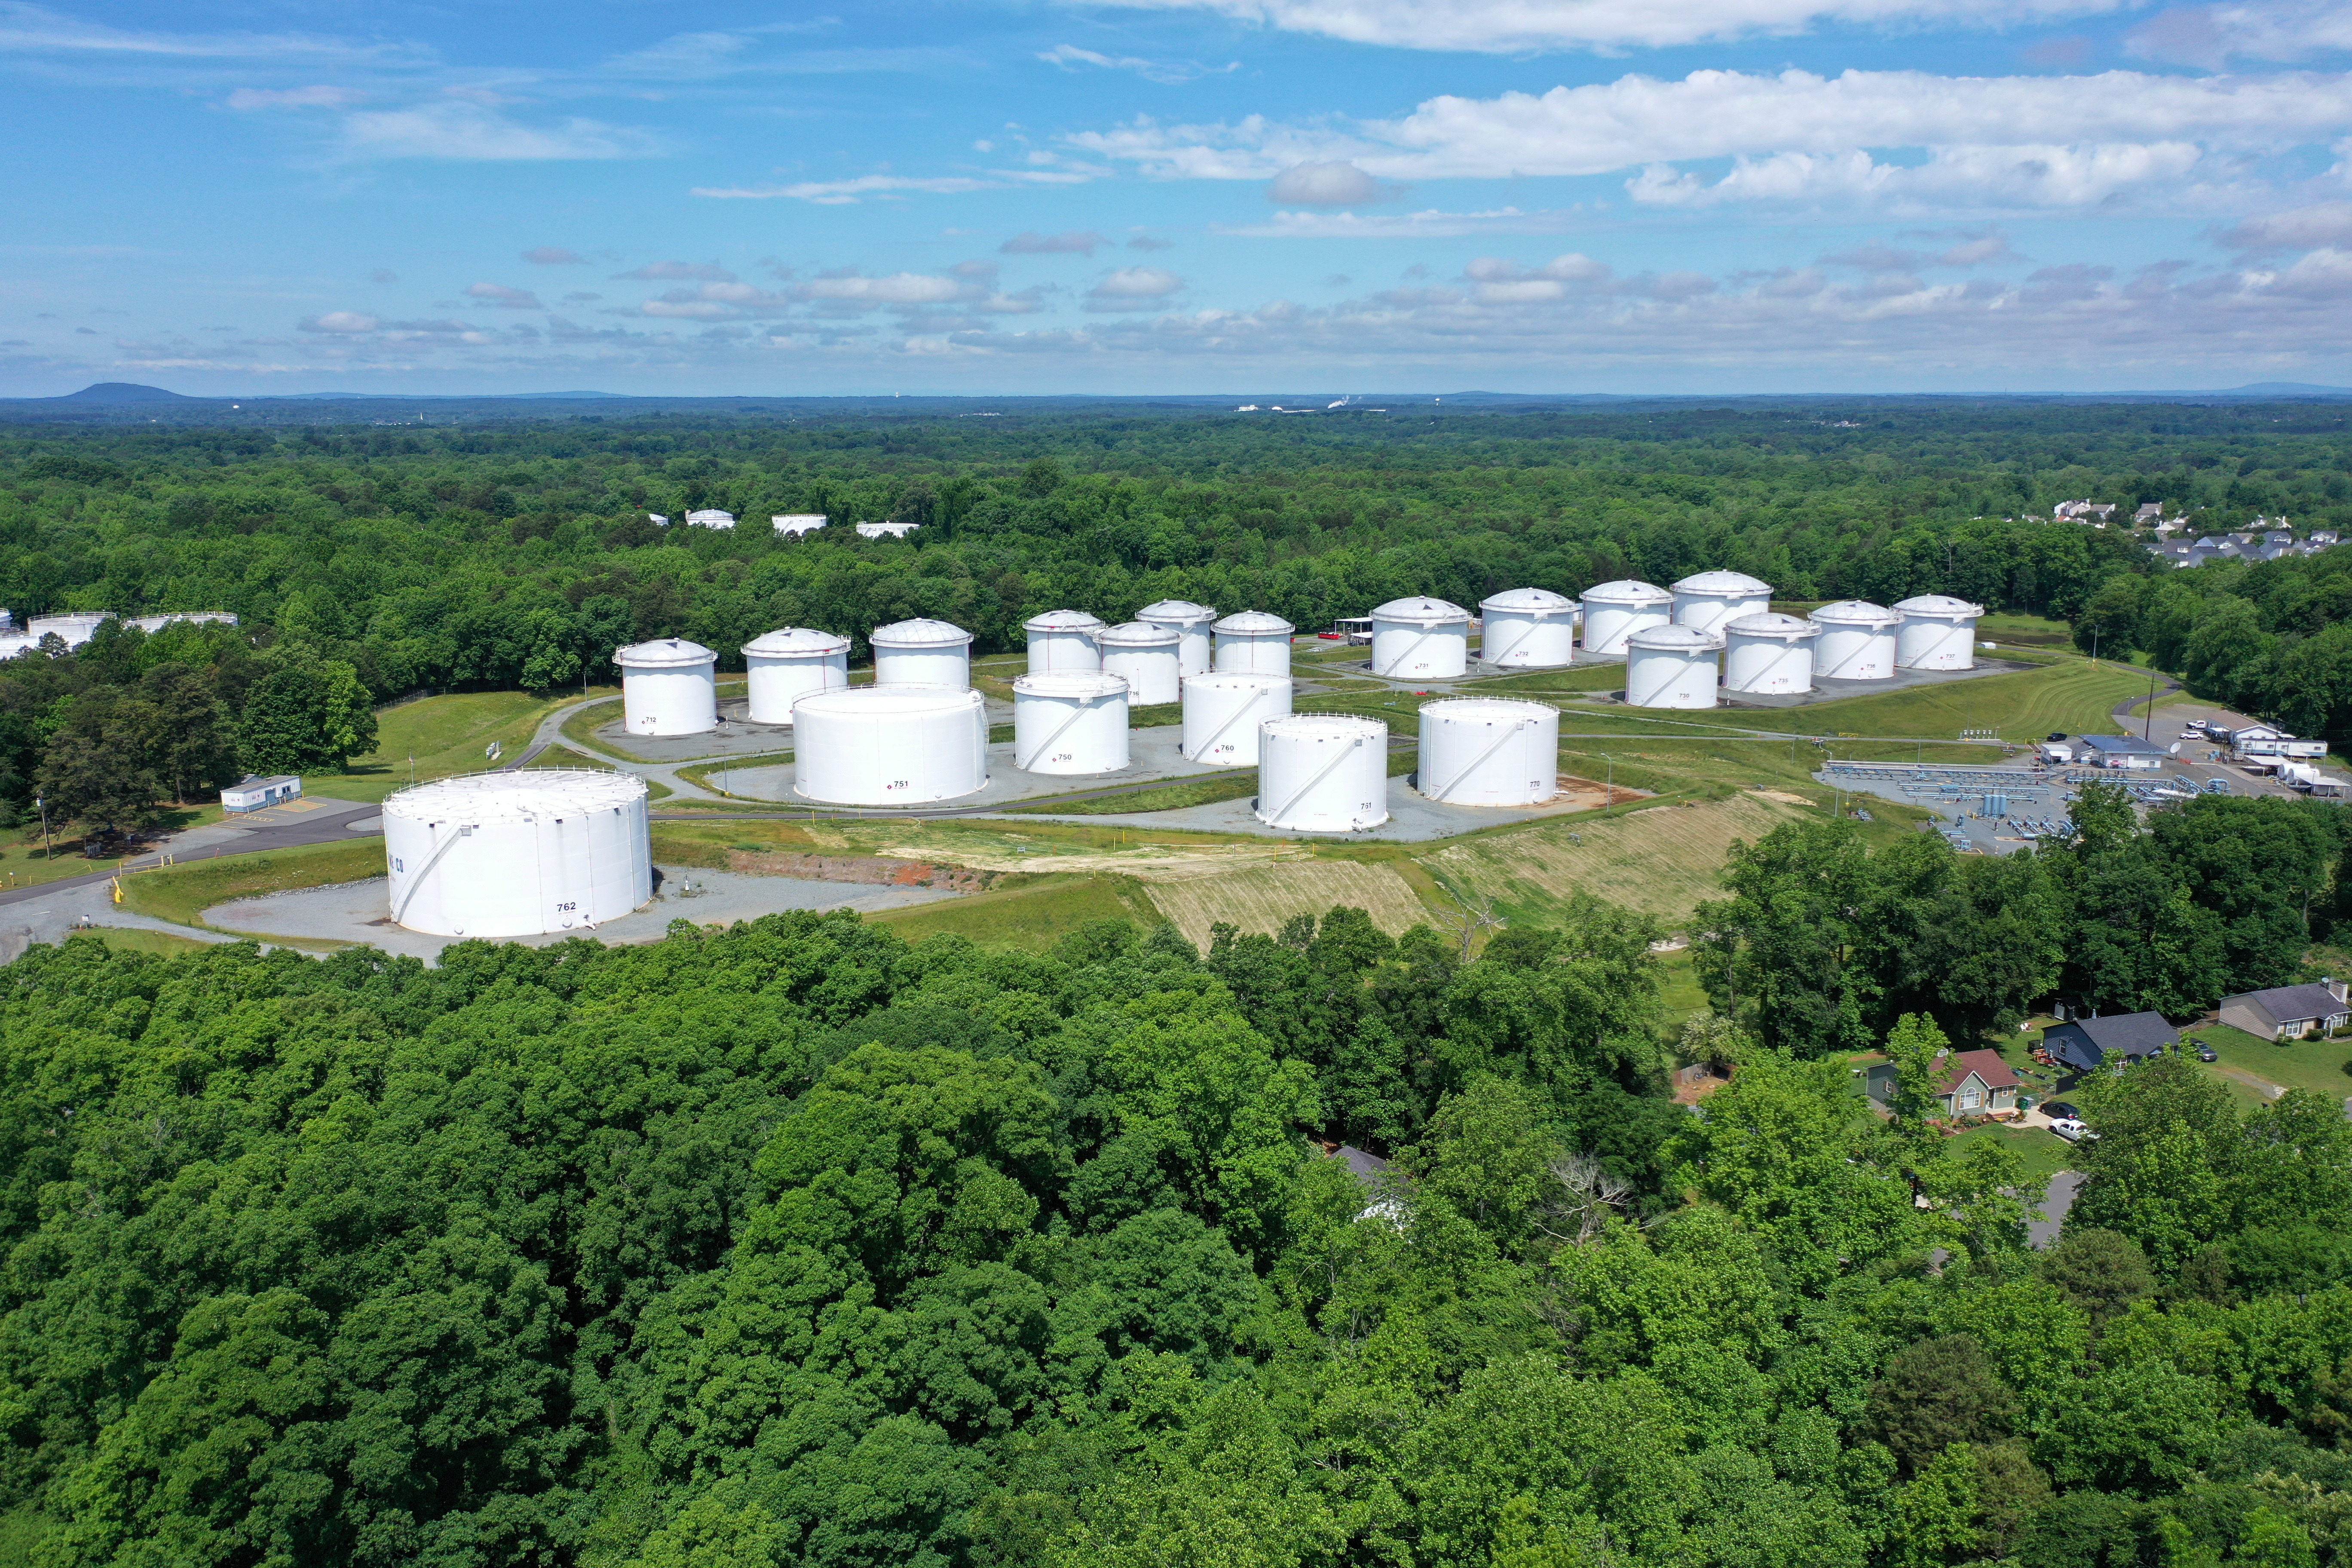 Holding tanks are seen in an aerial photograph at Colonial Pipeline's Charlotte Tank Farm in Charlotte, North Carolina, U.S. May 10, 2021. REUTERS/Drone Base